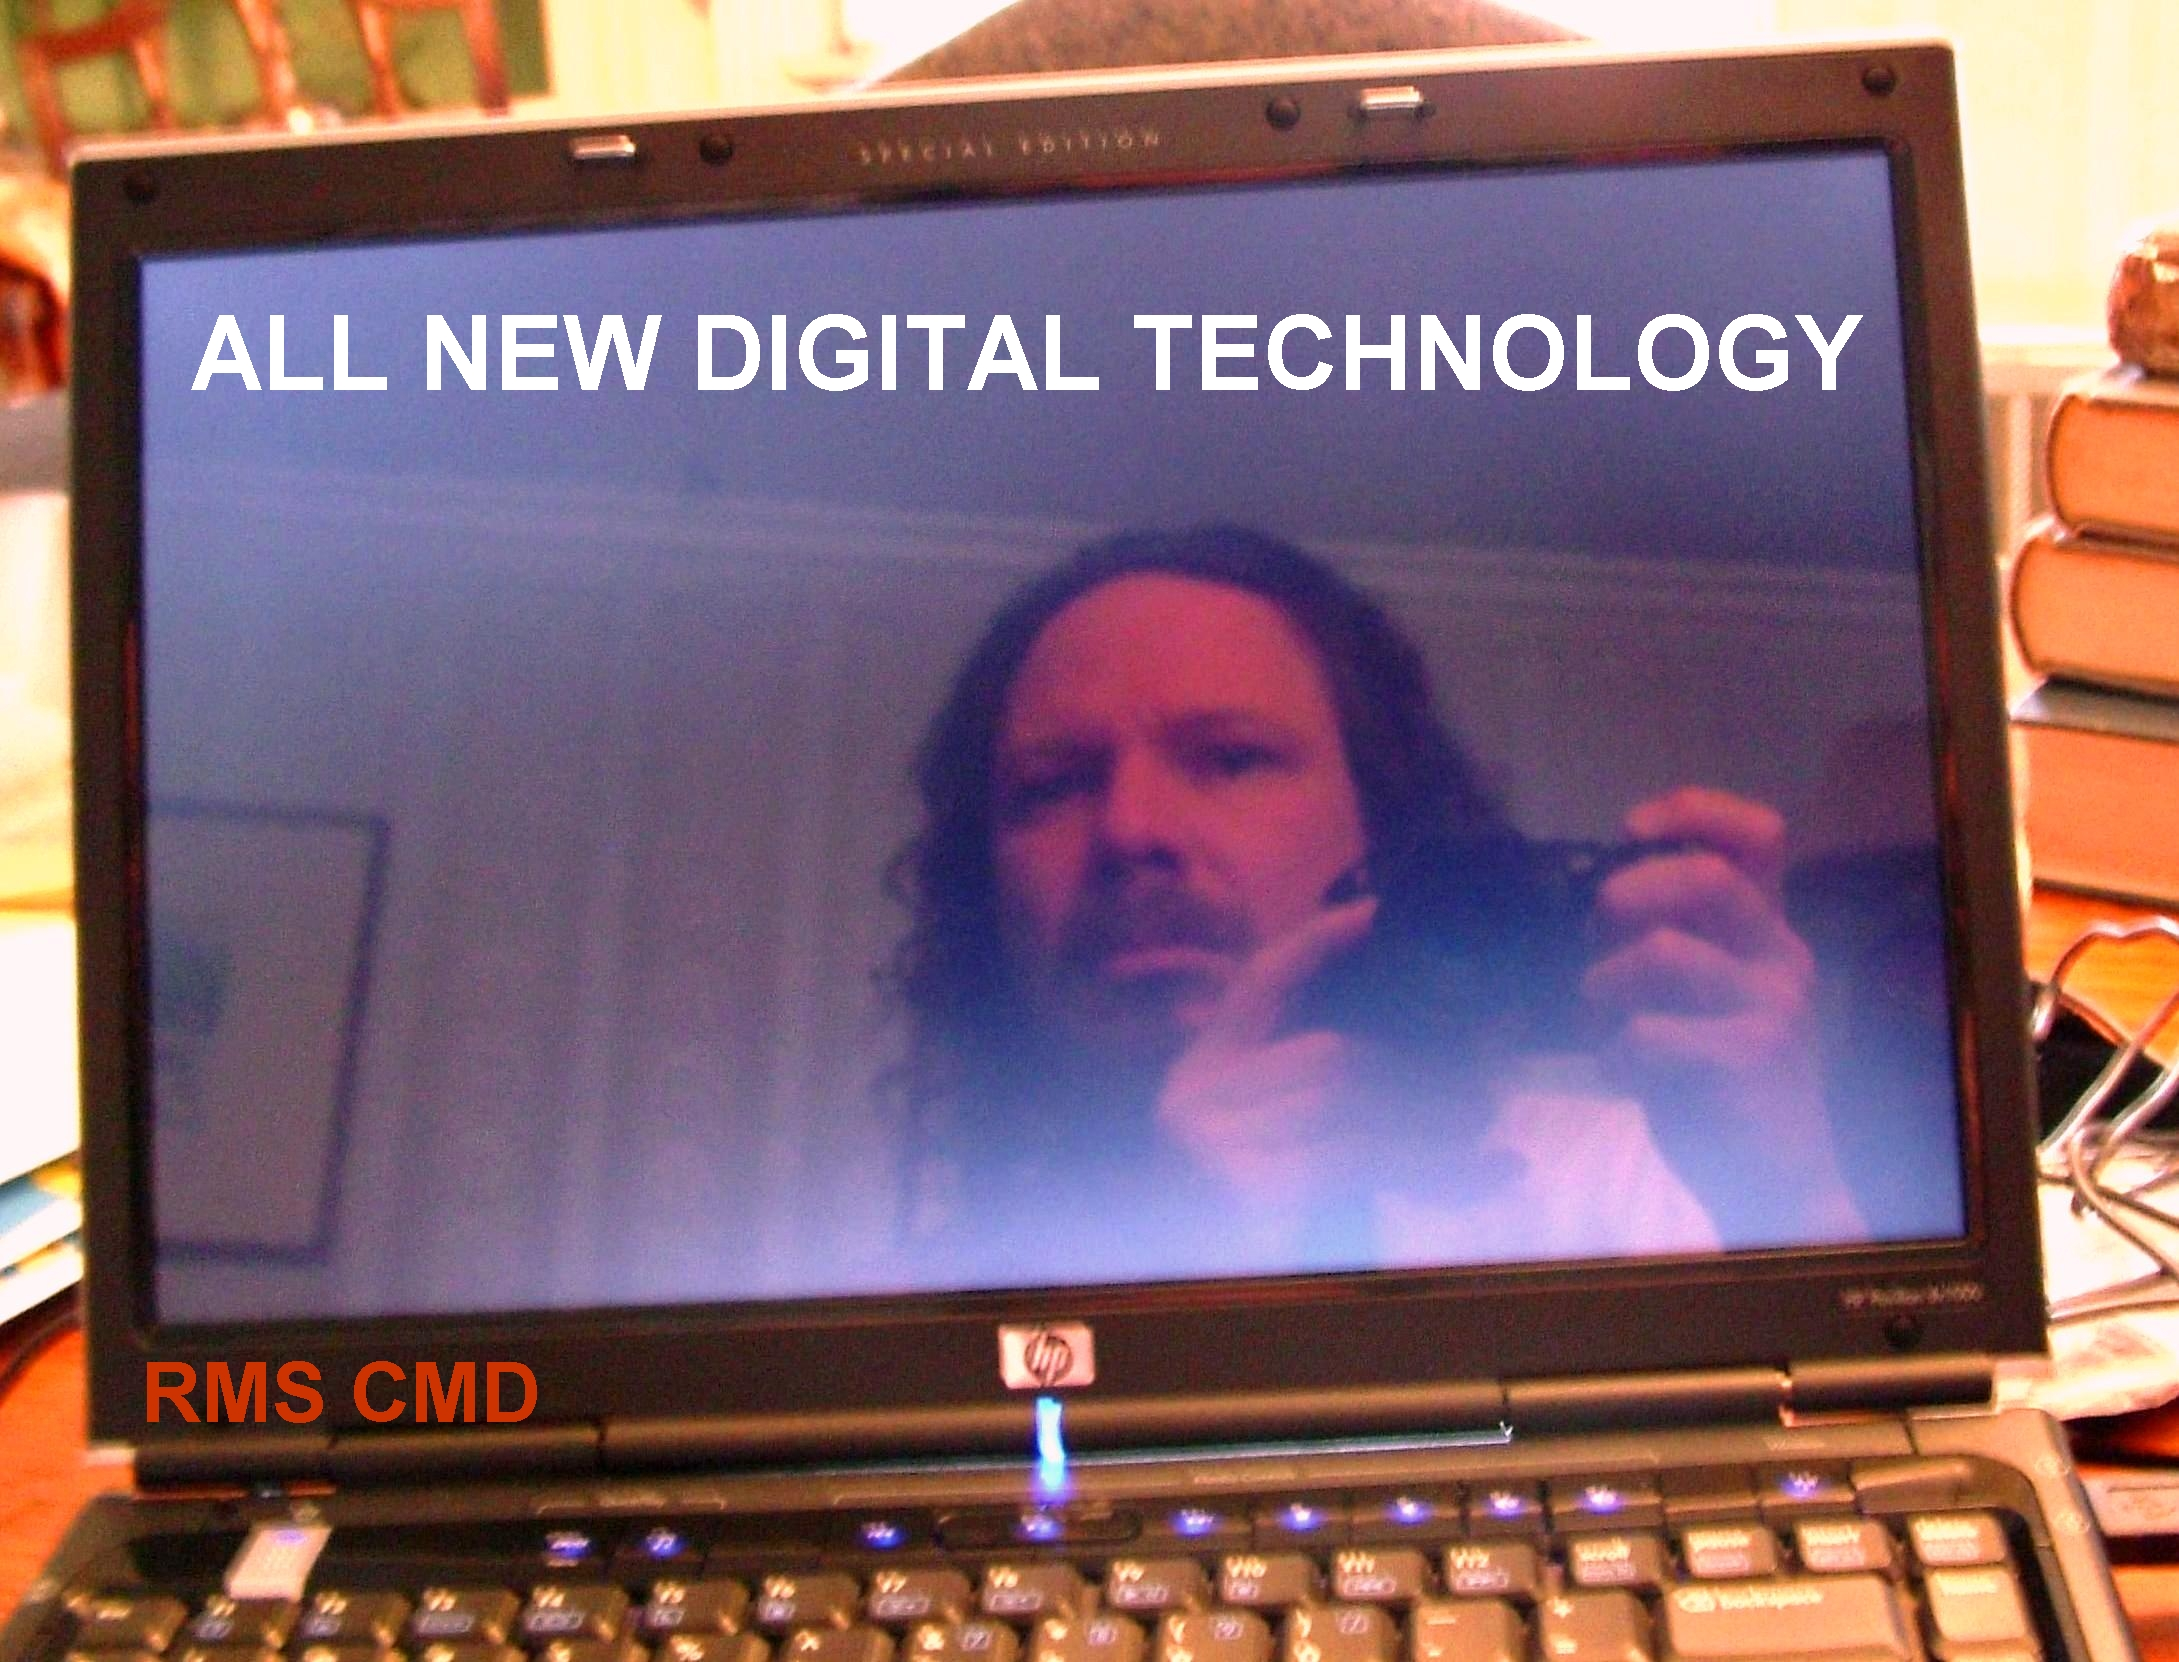 Computer Technology Digital Camera Robert Schoch Self Portrait Economic Recovery Energy Crisis Colette Dowell